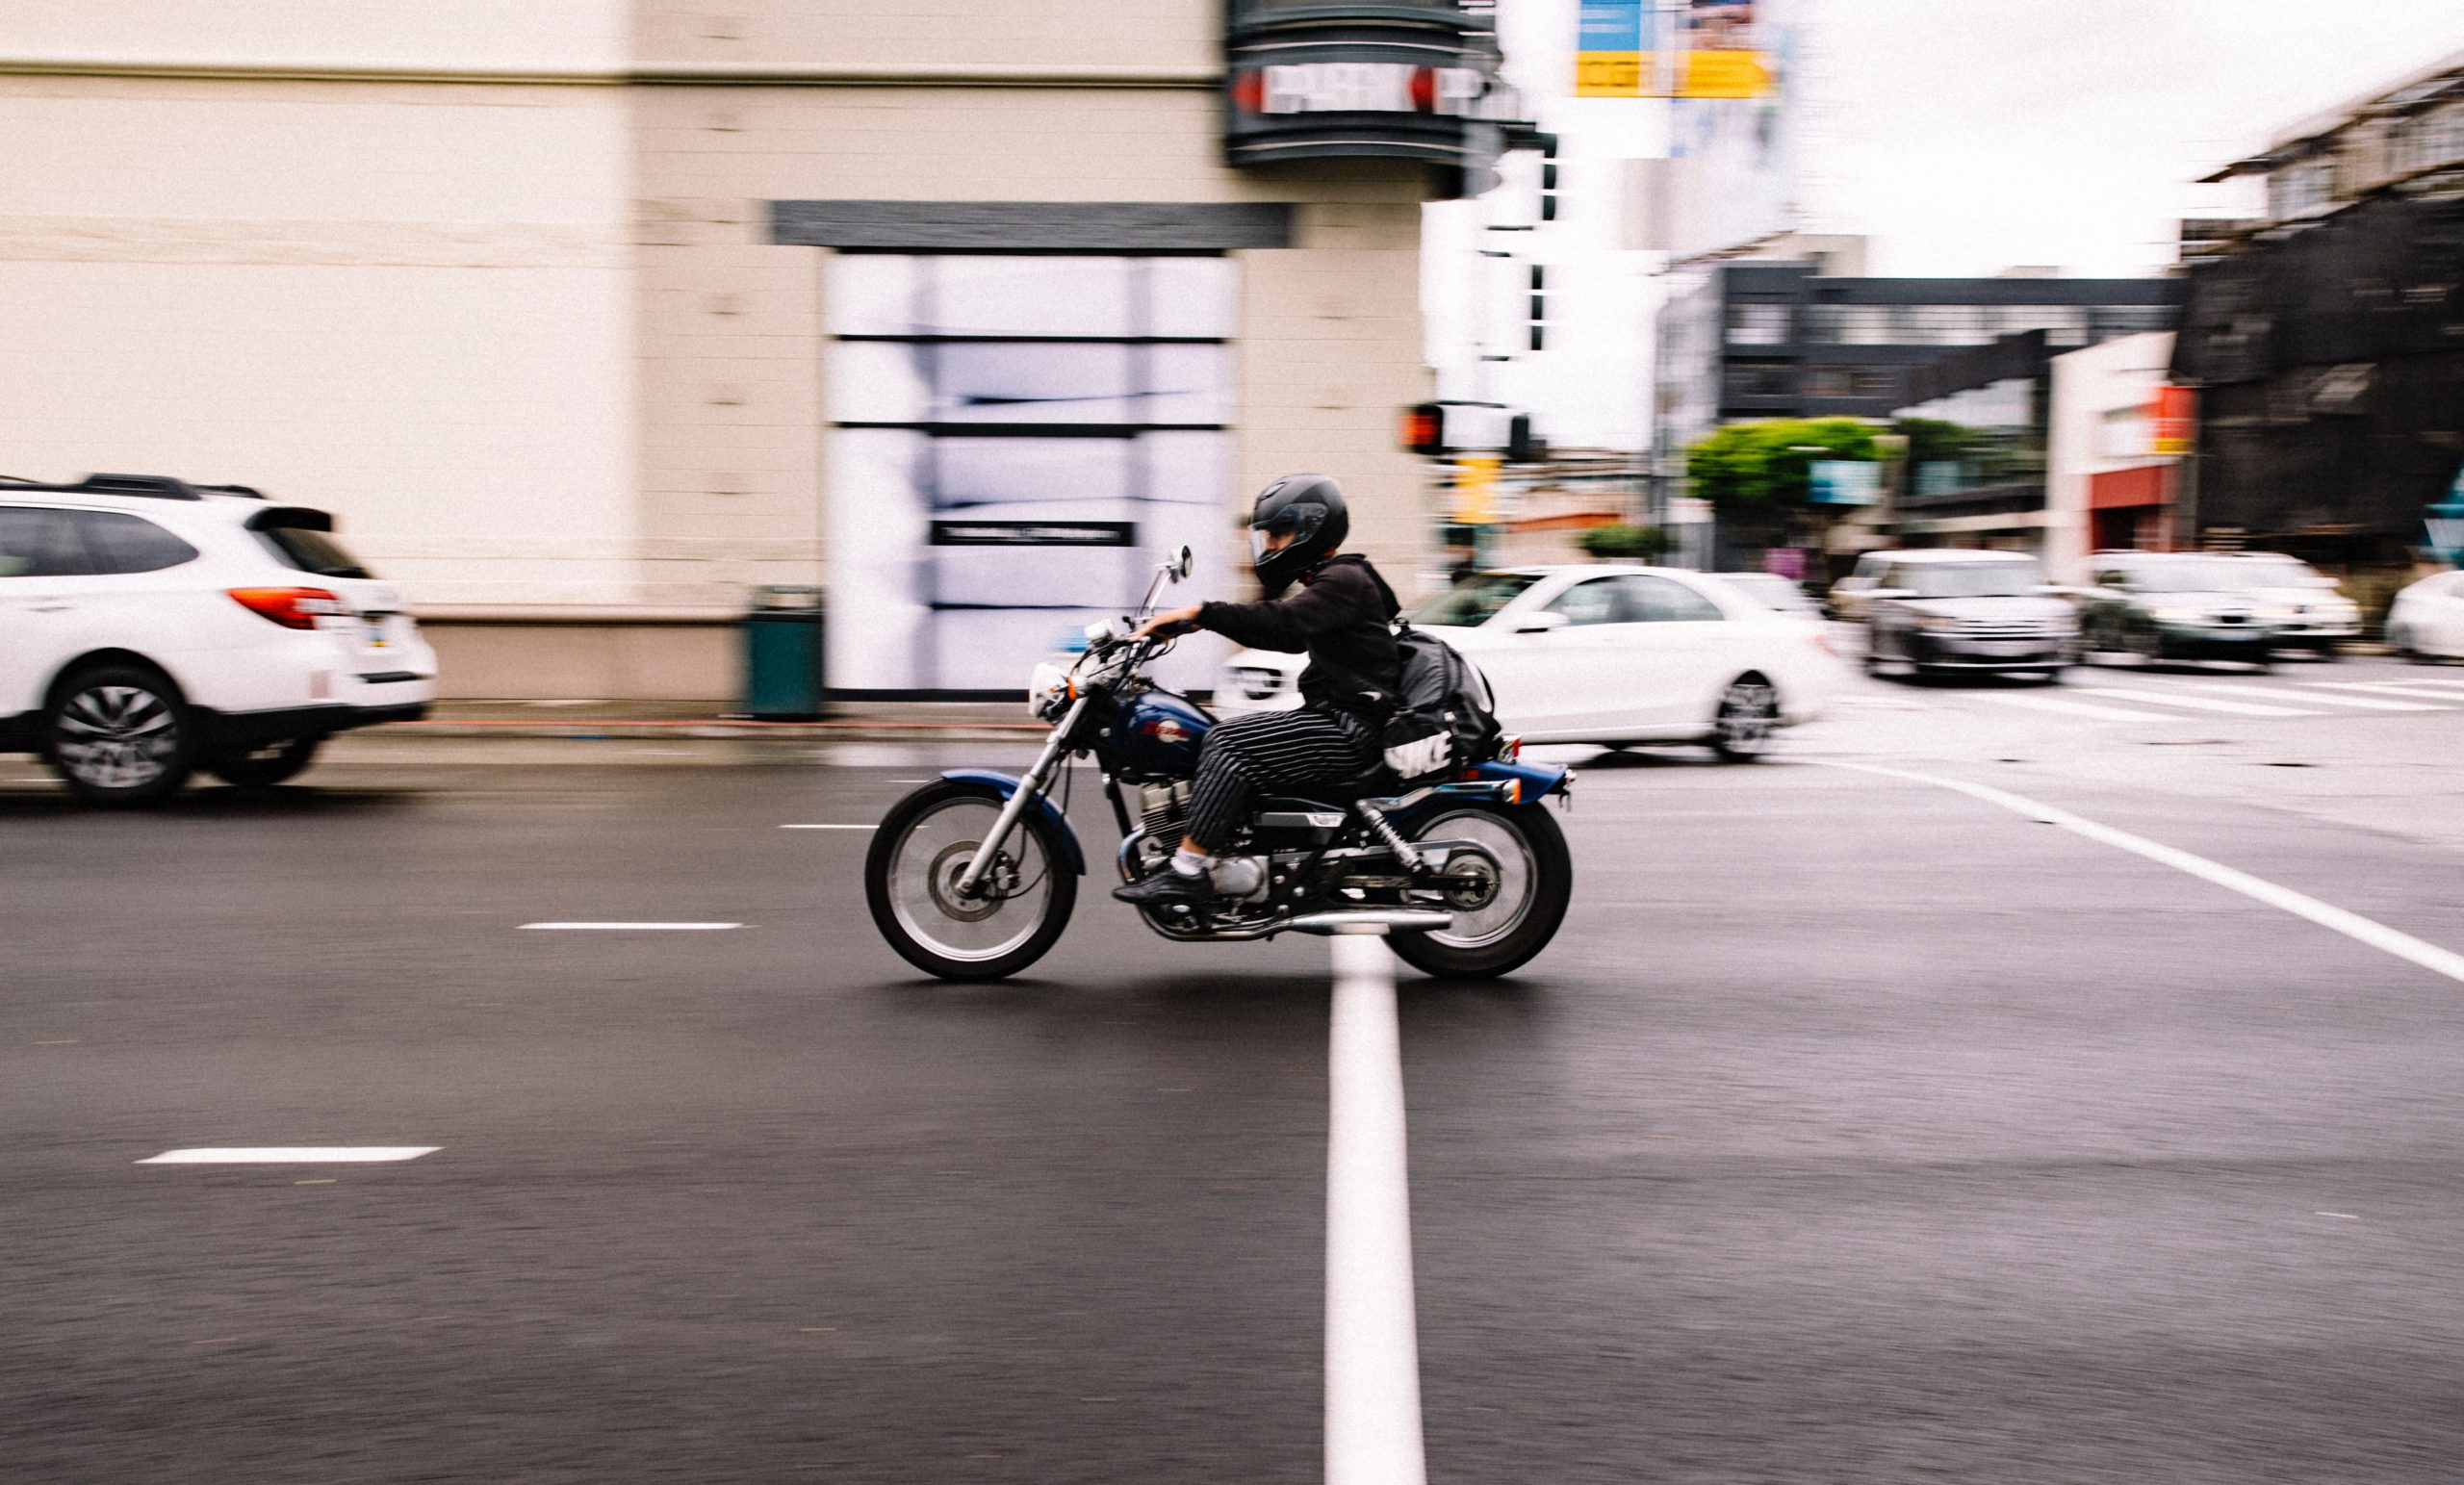 Can You Sue for Pain and Suffering After a Motorcycle Accident in NJ?